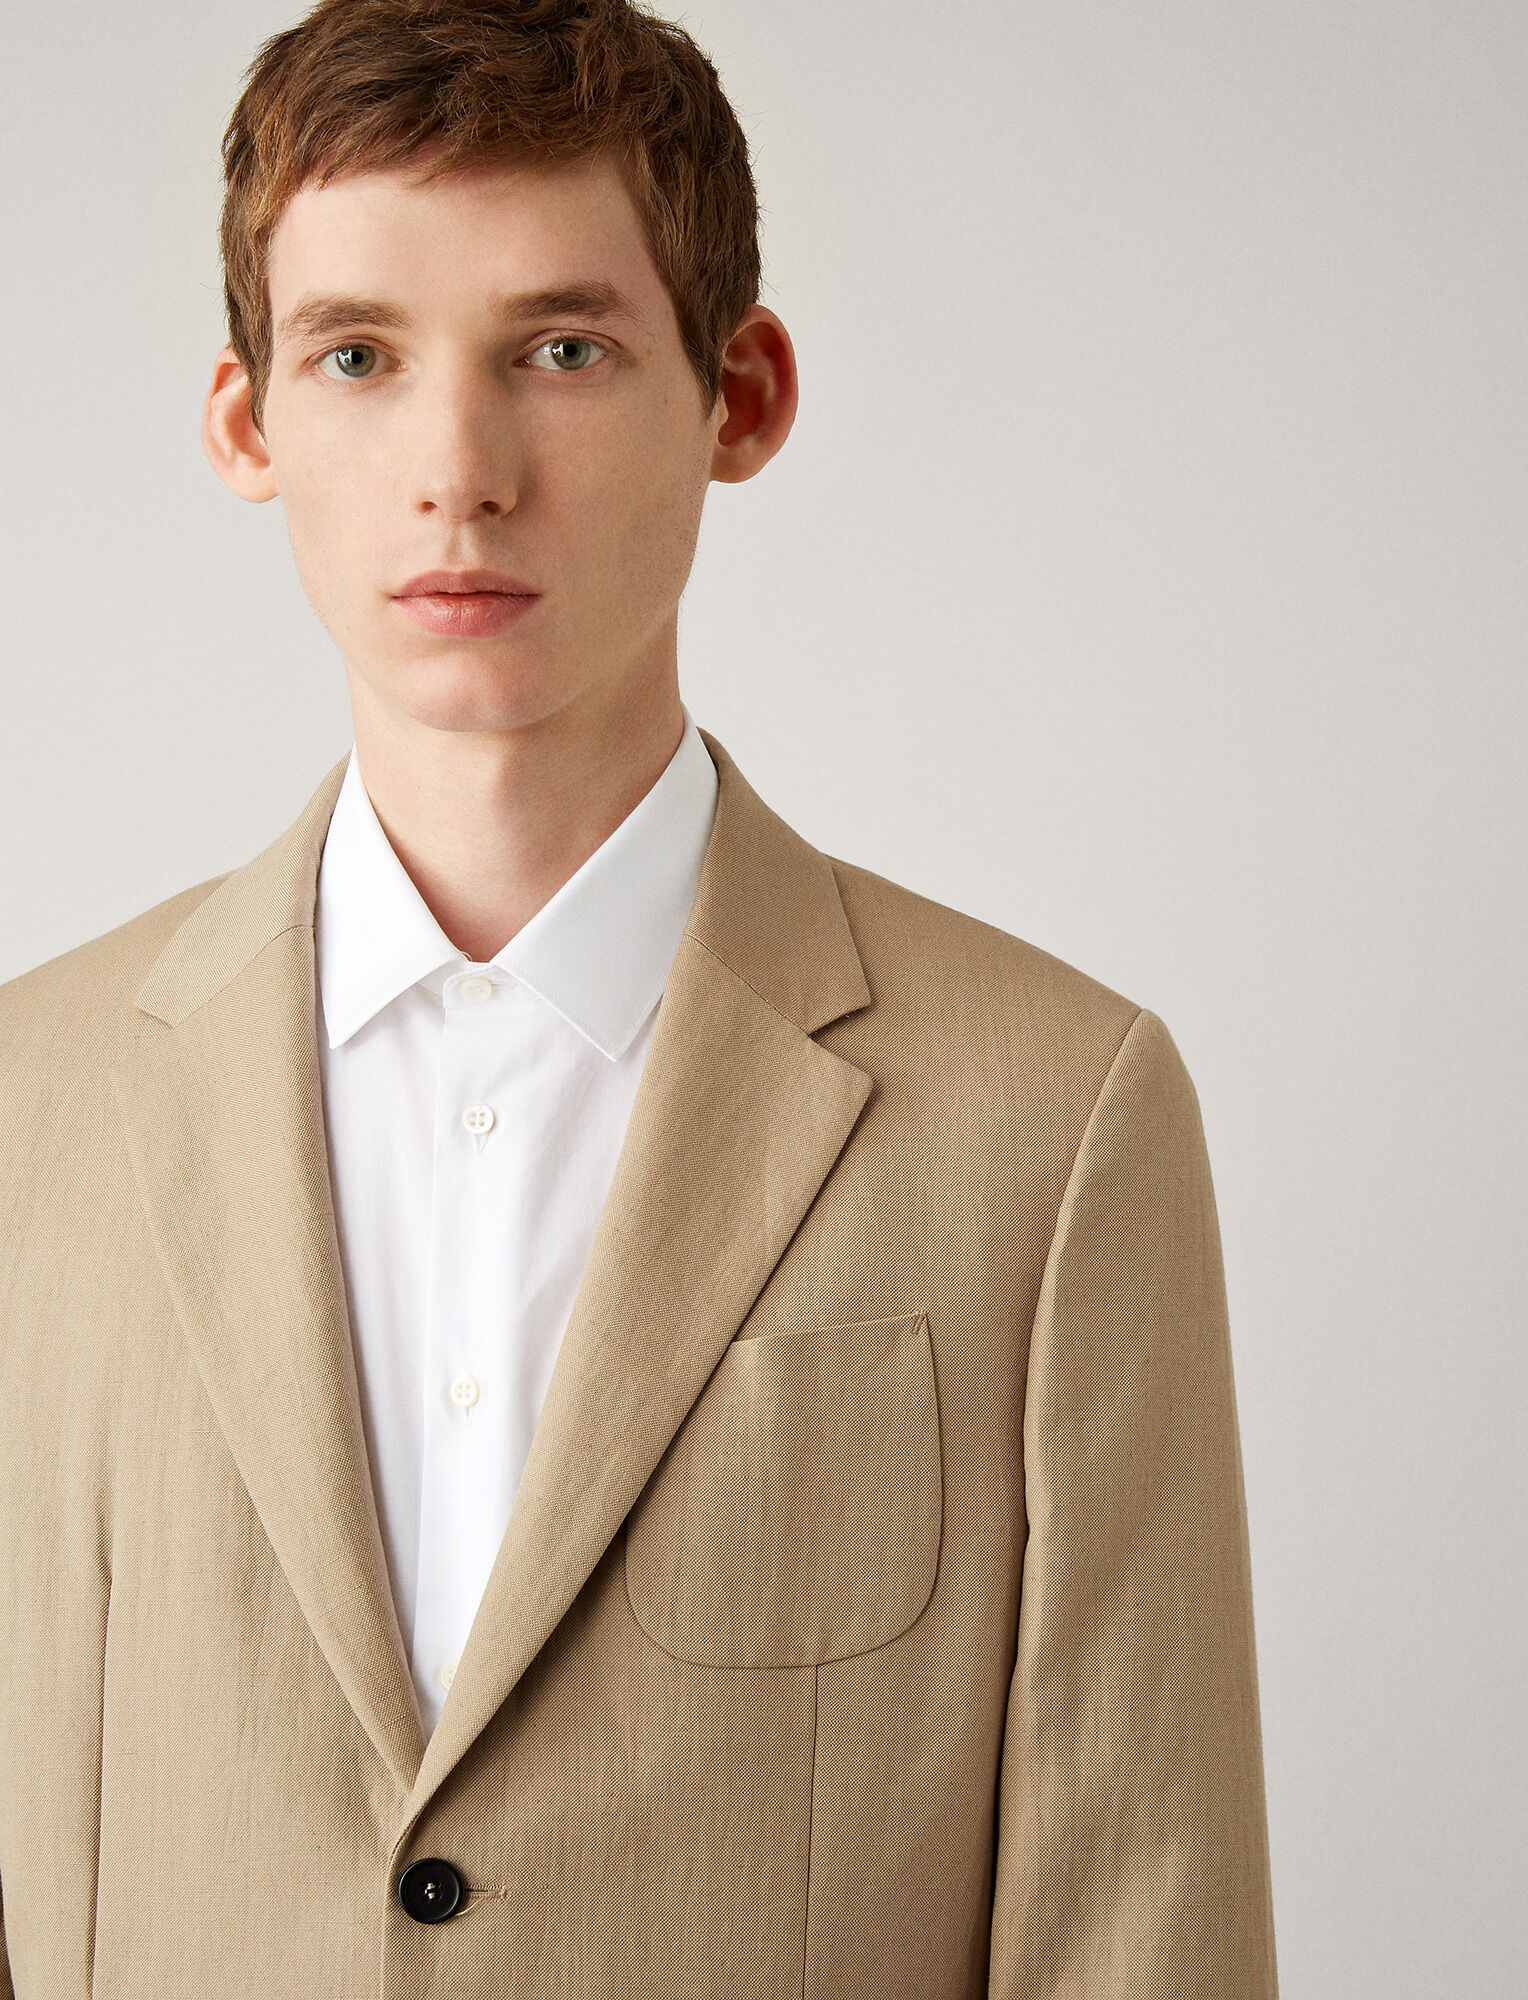 Joseph, Cassis Linen Cotton Blend Jacket, in SAND